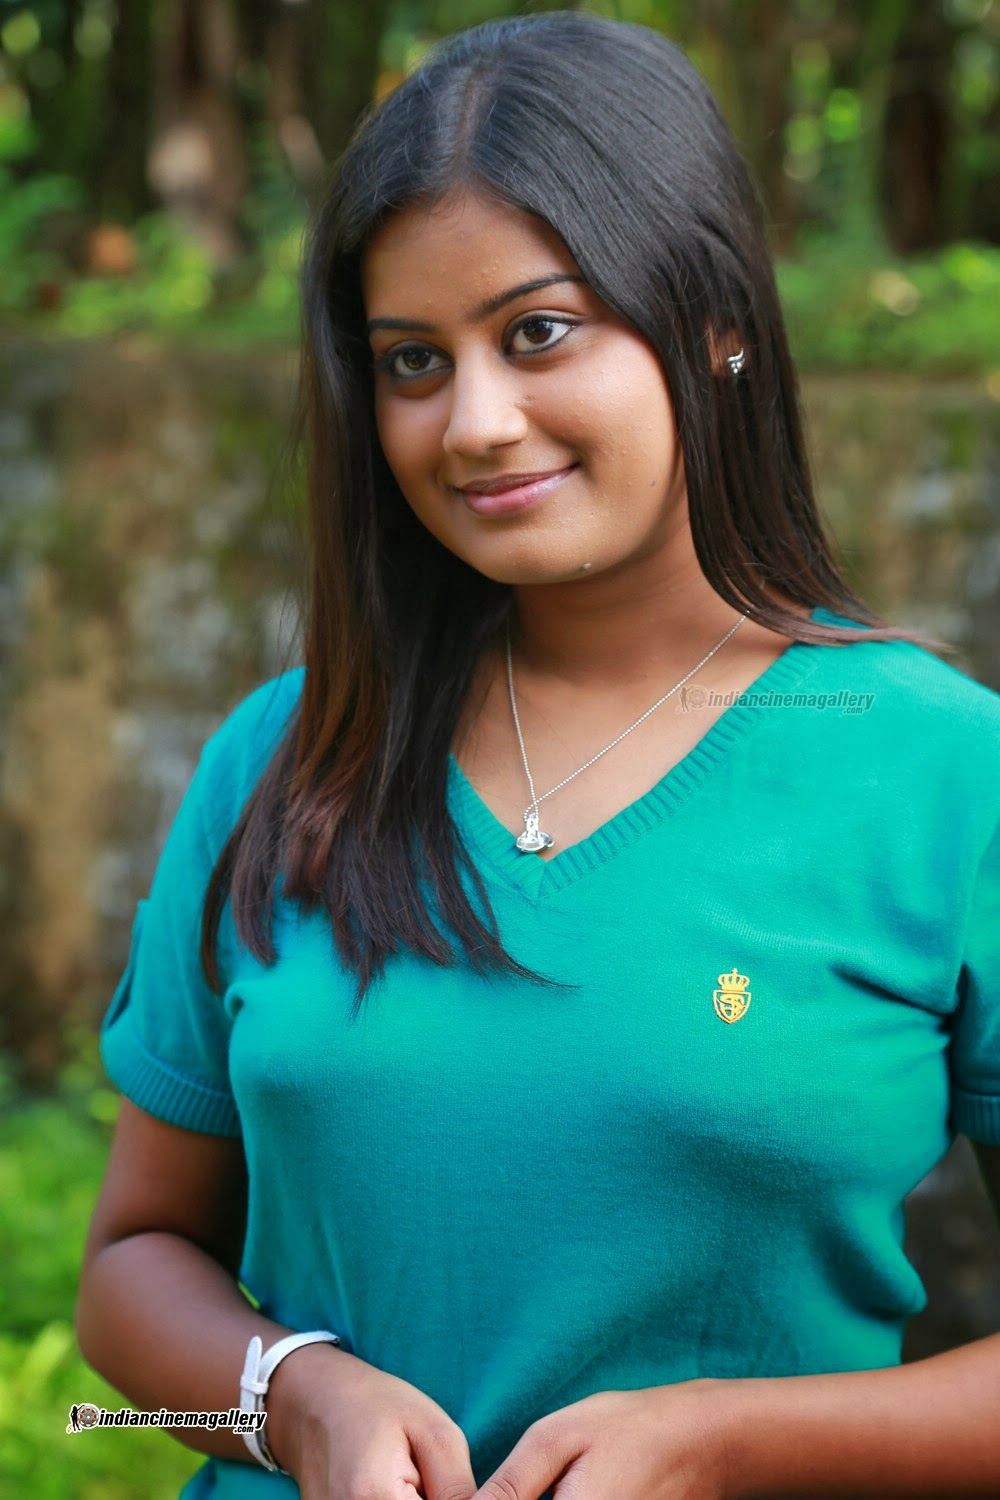 Ajith Kumar Hd Wallpaper Actress Ansiba Hot Photos Drishyam Malayalam Movie Hot